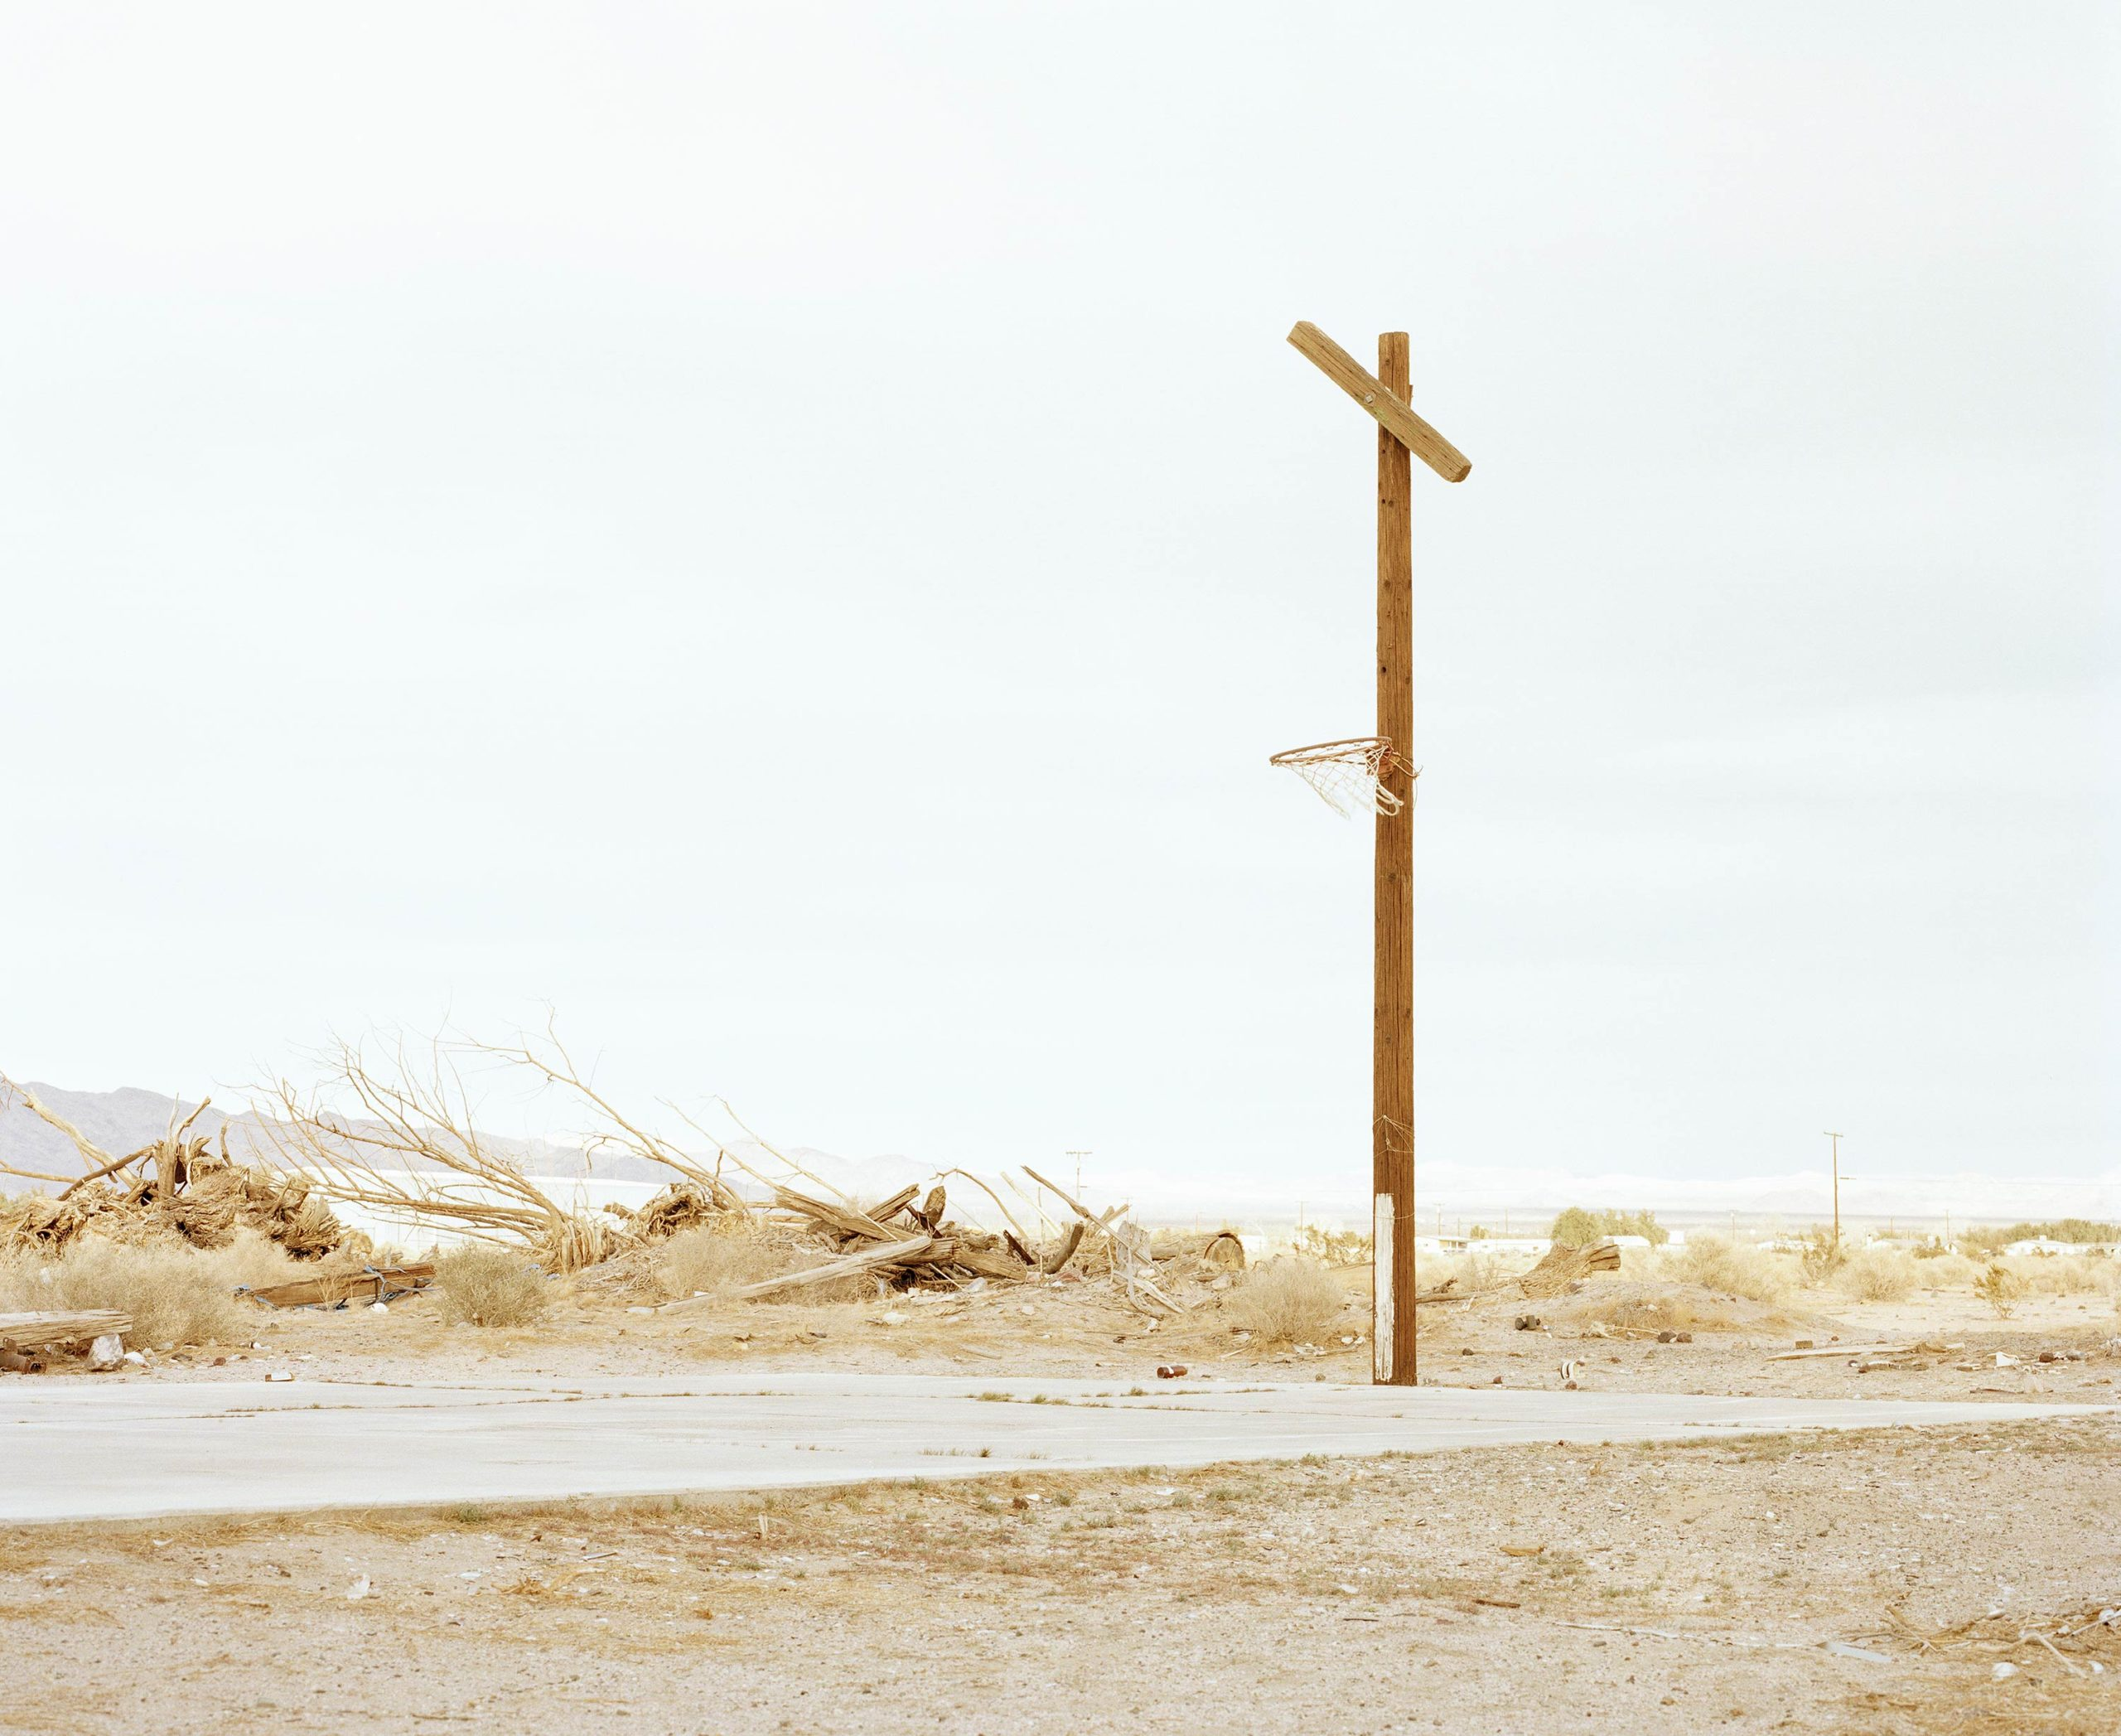 Hoop Dreams, Mojave Desert - Oh Mojave Collection - Fine Art Photography by Toby Dixon